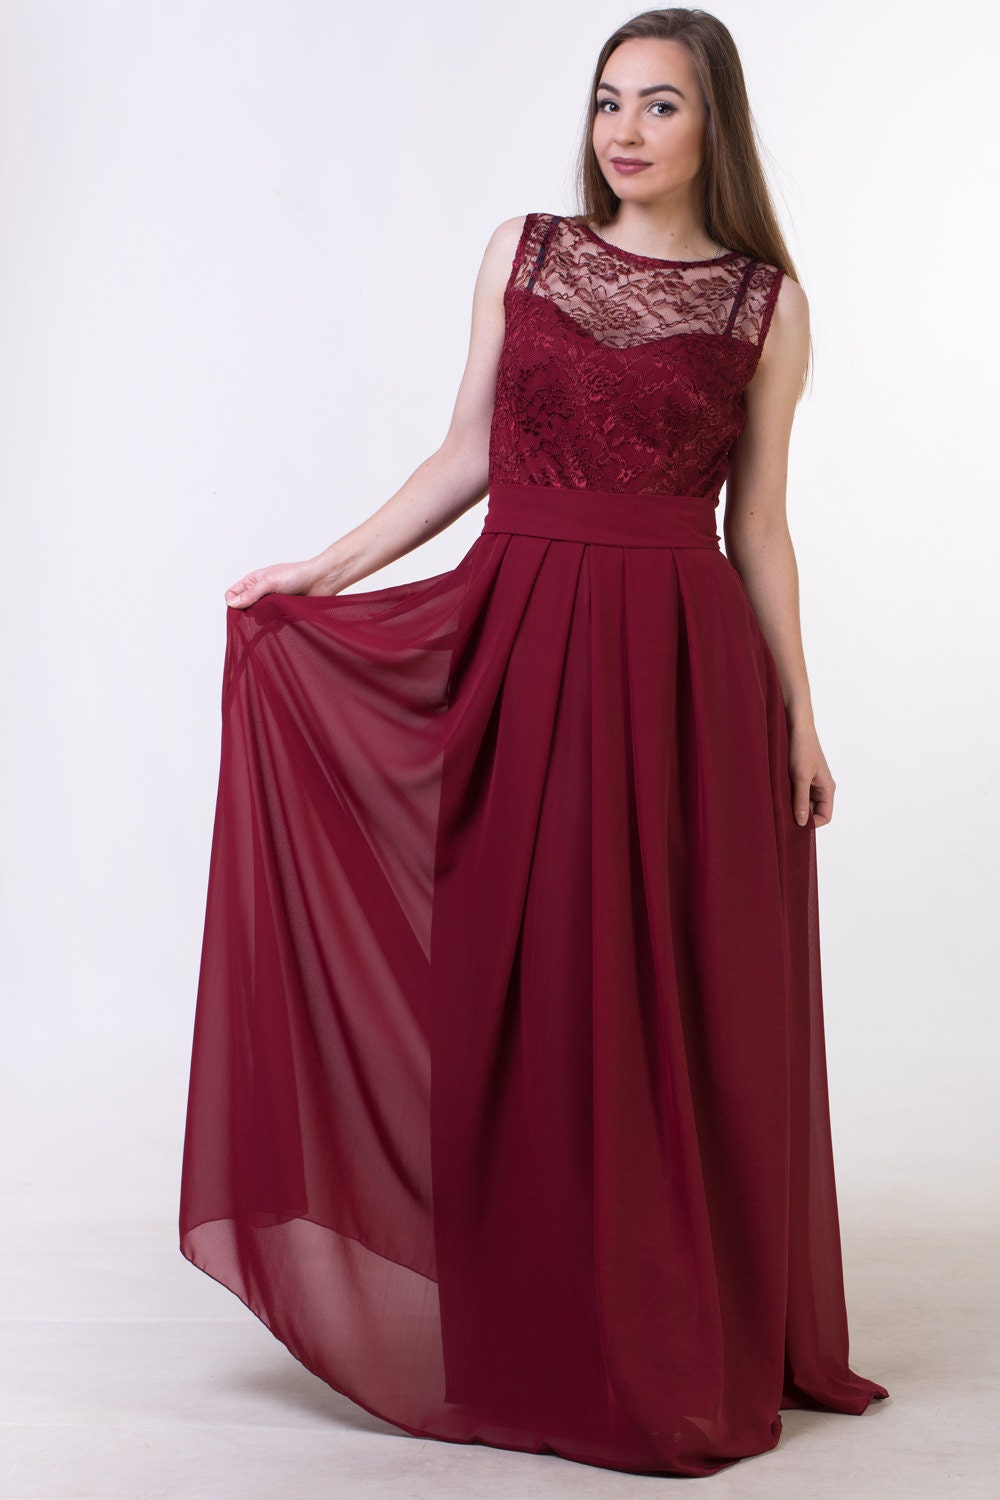 Red wine bridesmaid dress burgundy red bridesmaid dress red zoom ombrellifo Choice Image